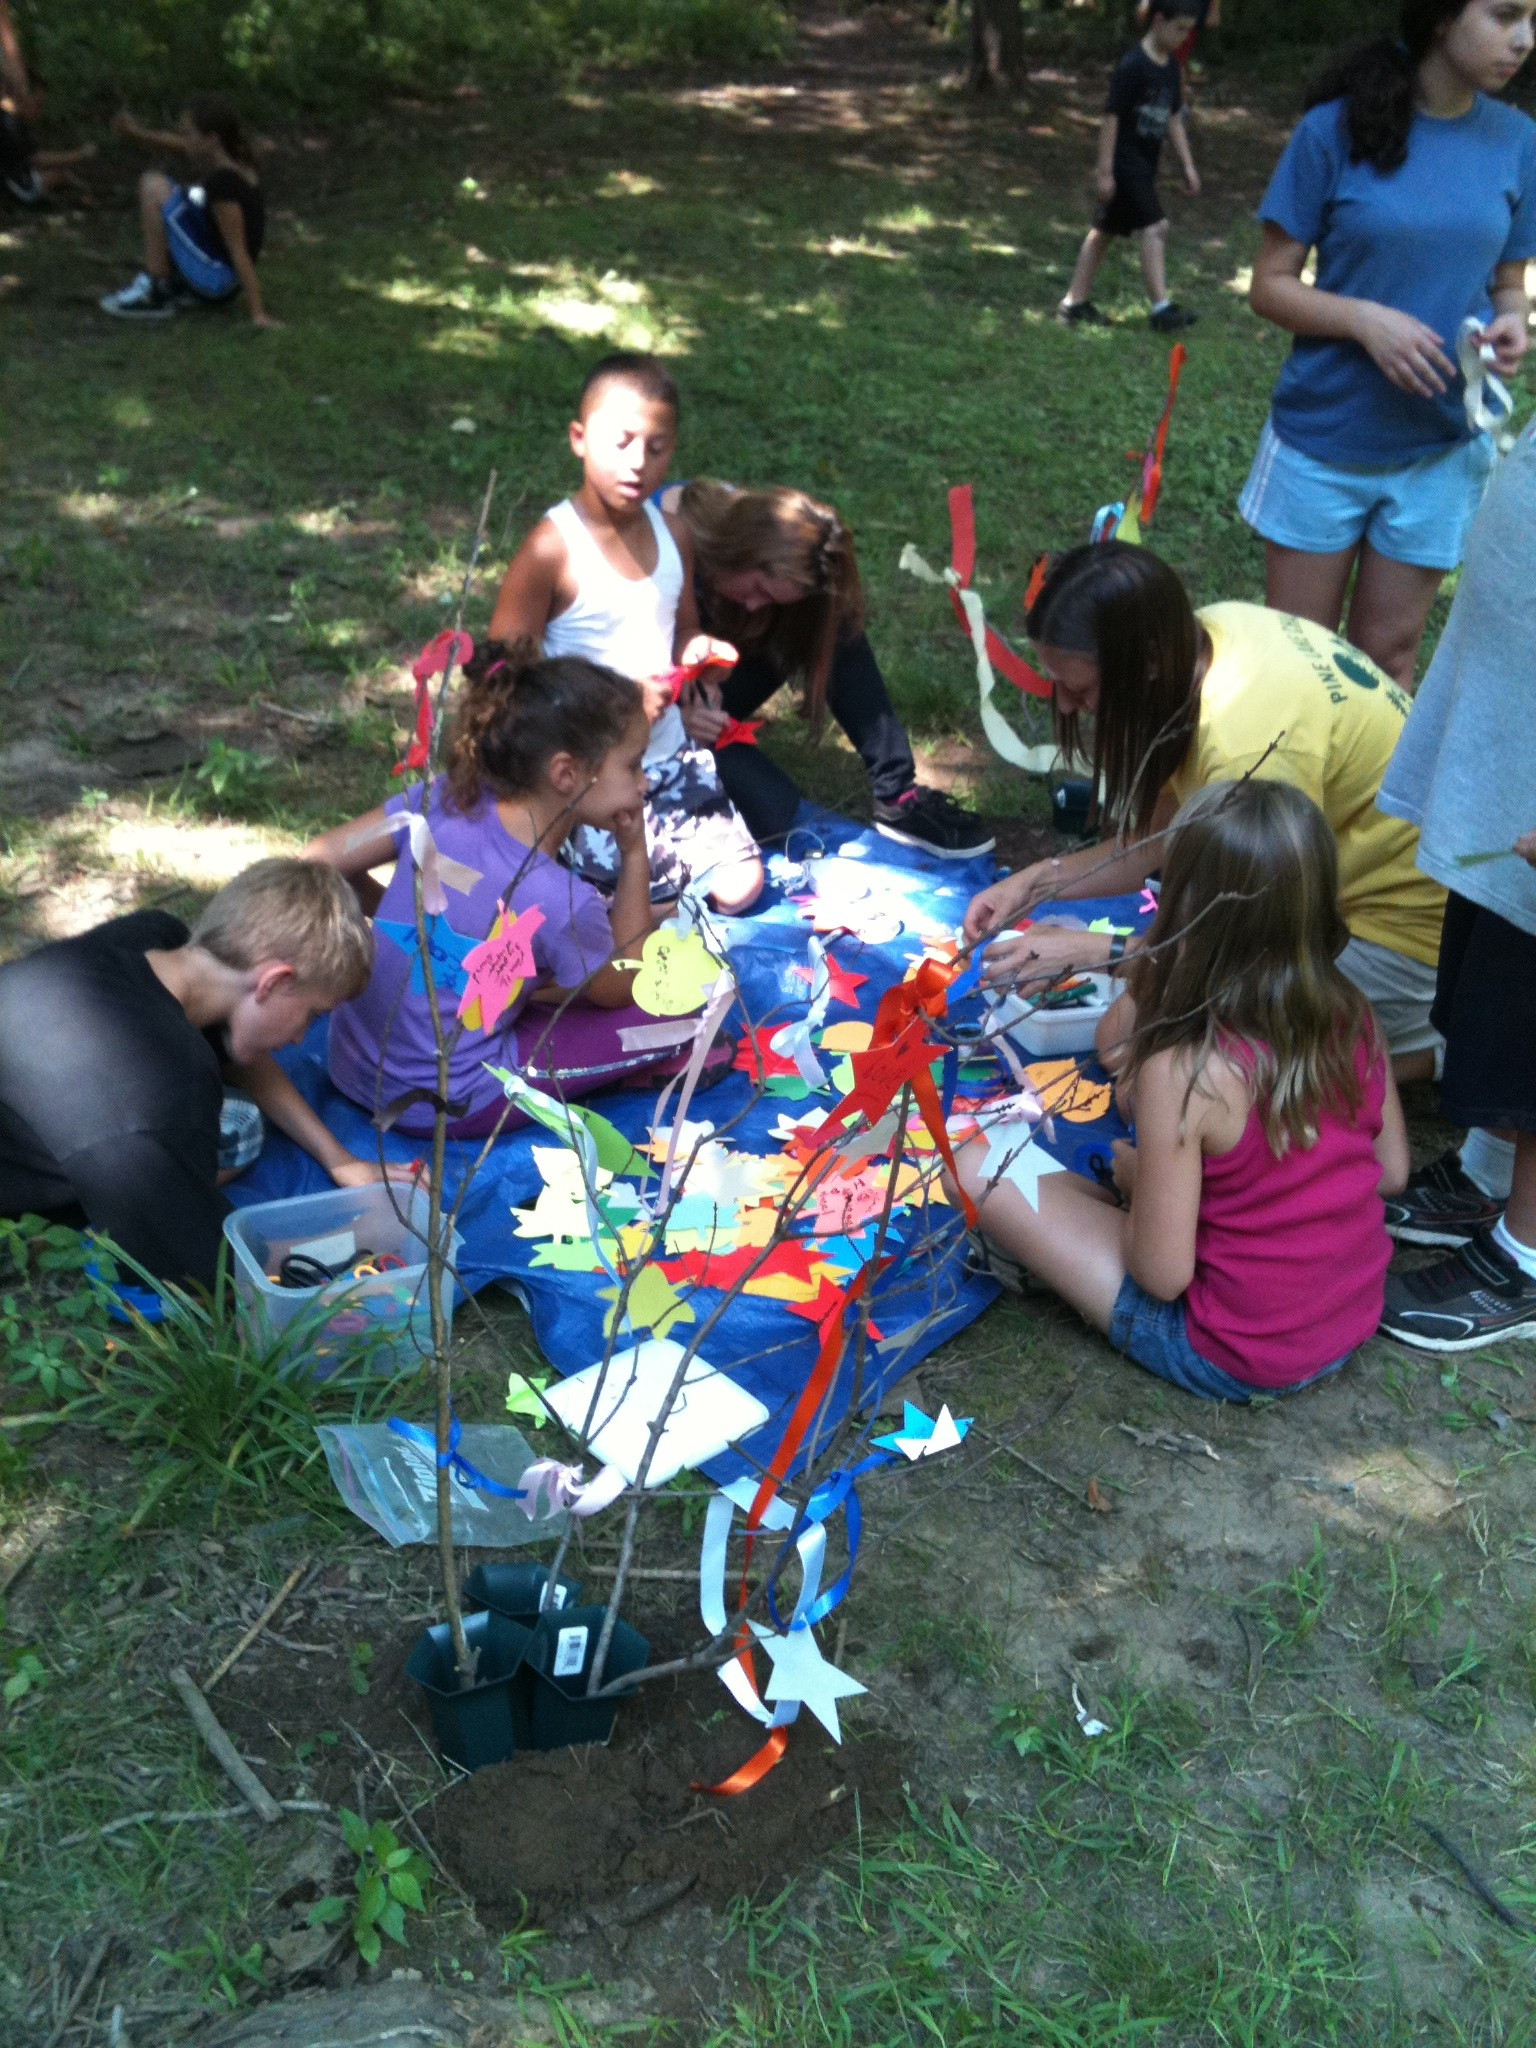 Group doing Crafts